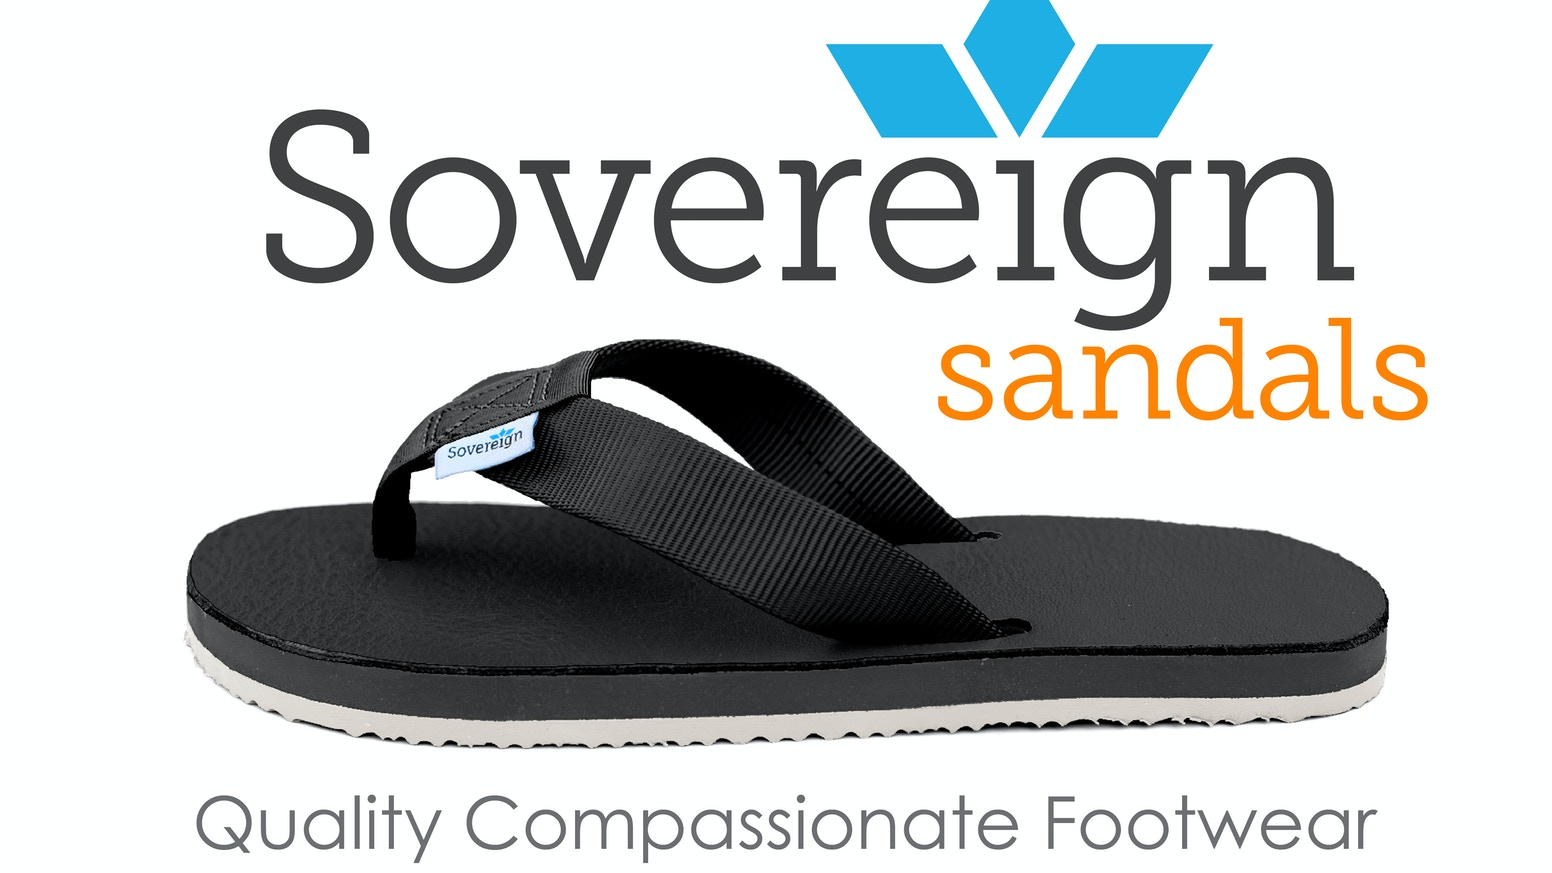 b4185db981c0 Artisan sandals compassionately hand crafted in CA